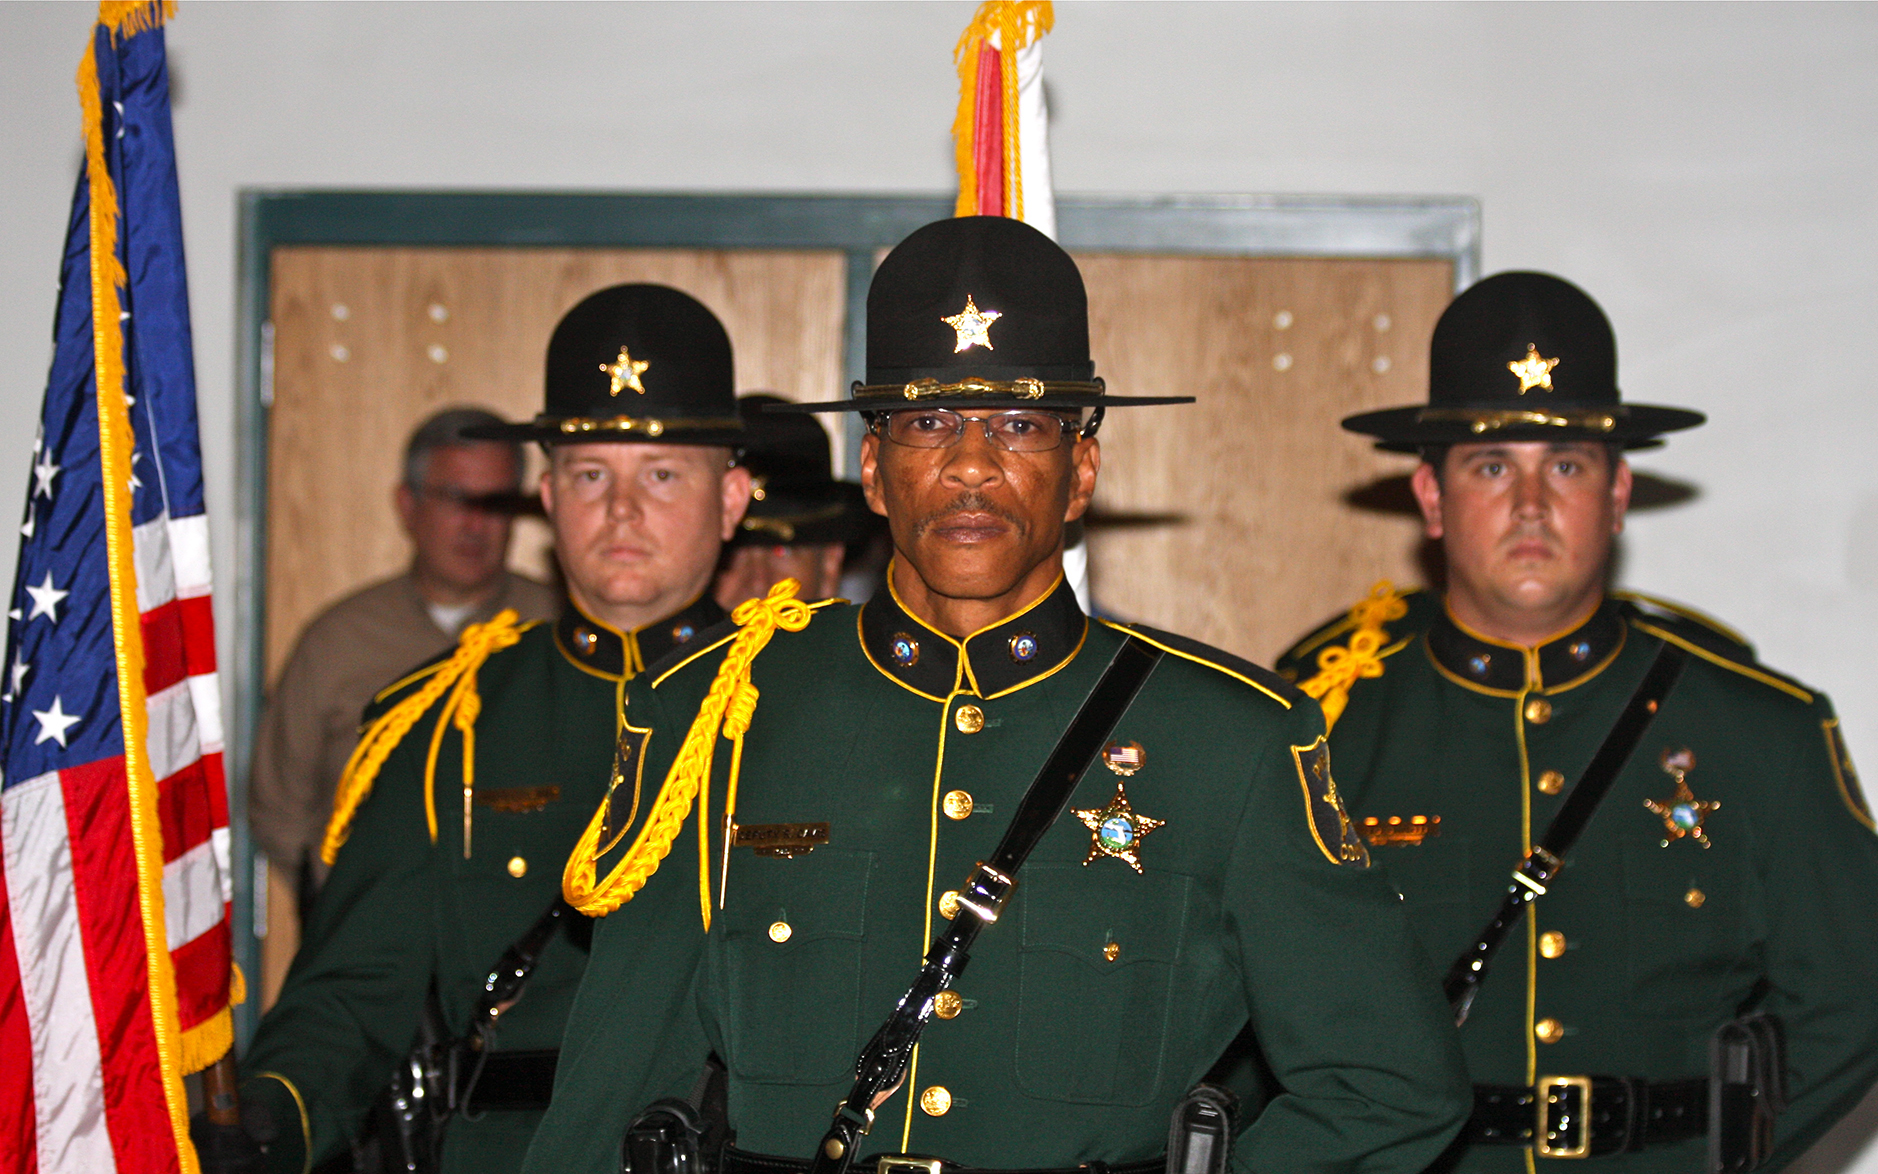 Pinellas County Sheriff's Office – Gold Shield Foundation